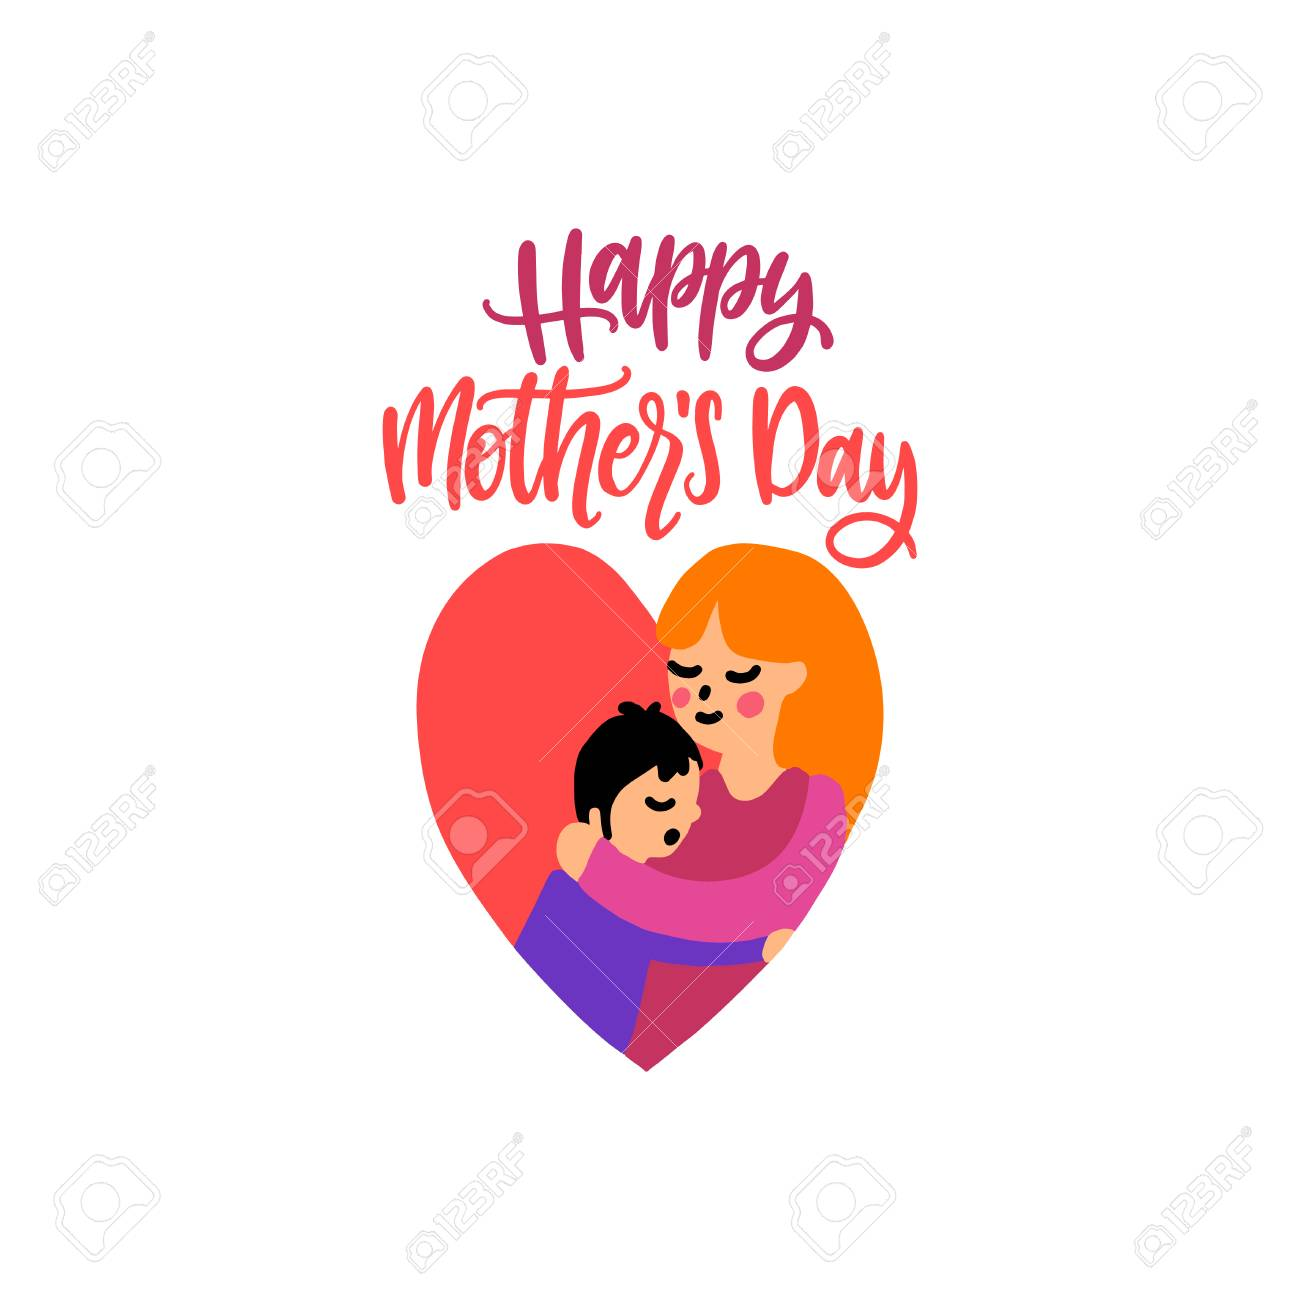 Happy Mothers Day Vector Hand Lettering Illustration Of Mother